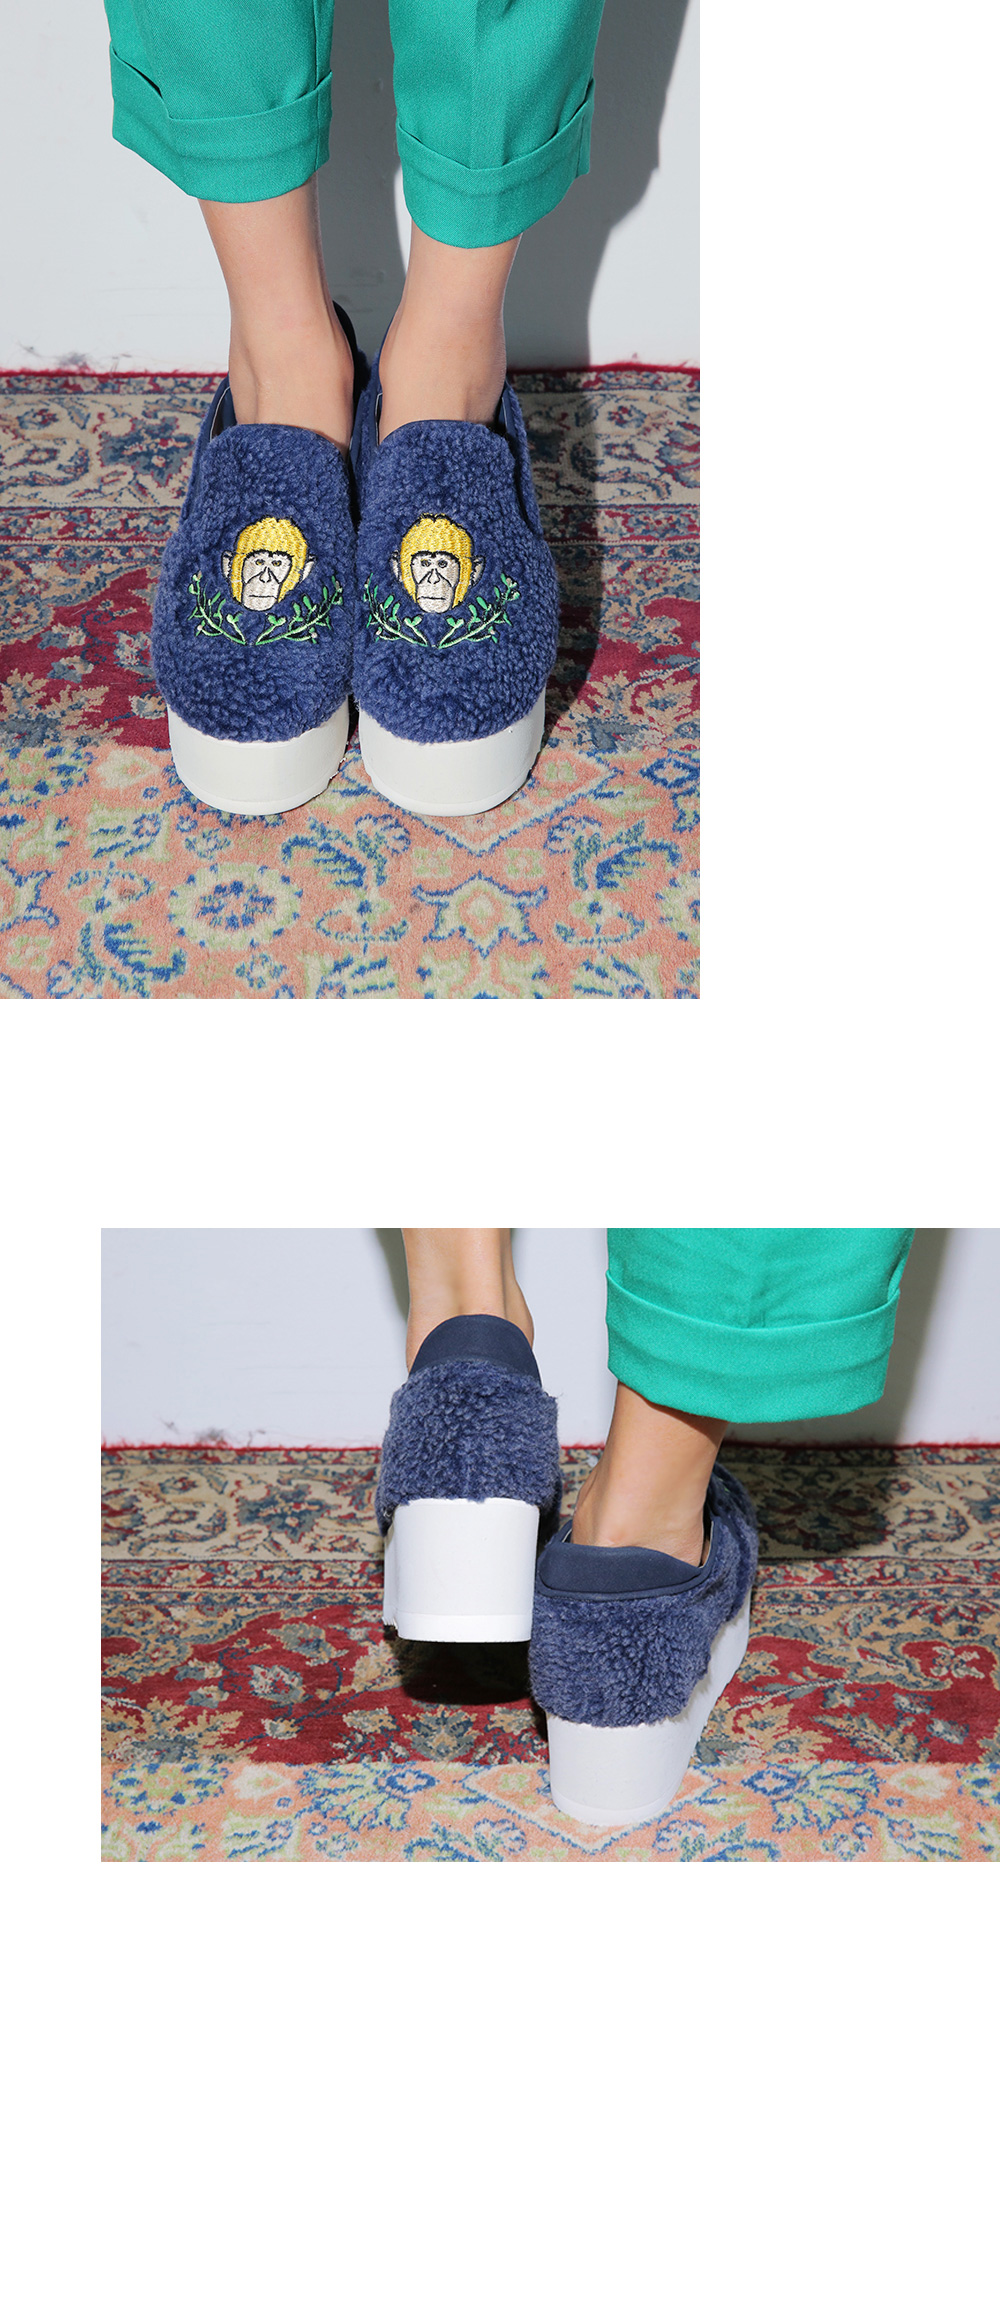 Monkey Patched Sherpa Platform Shoes|stylenanda